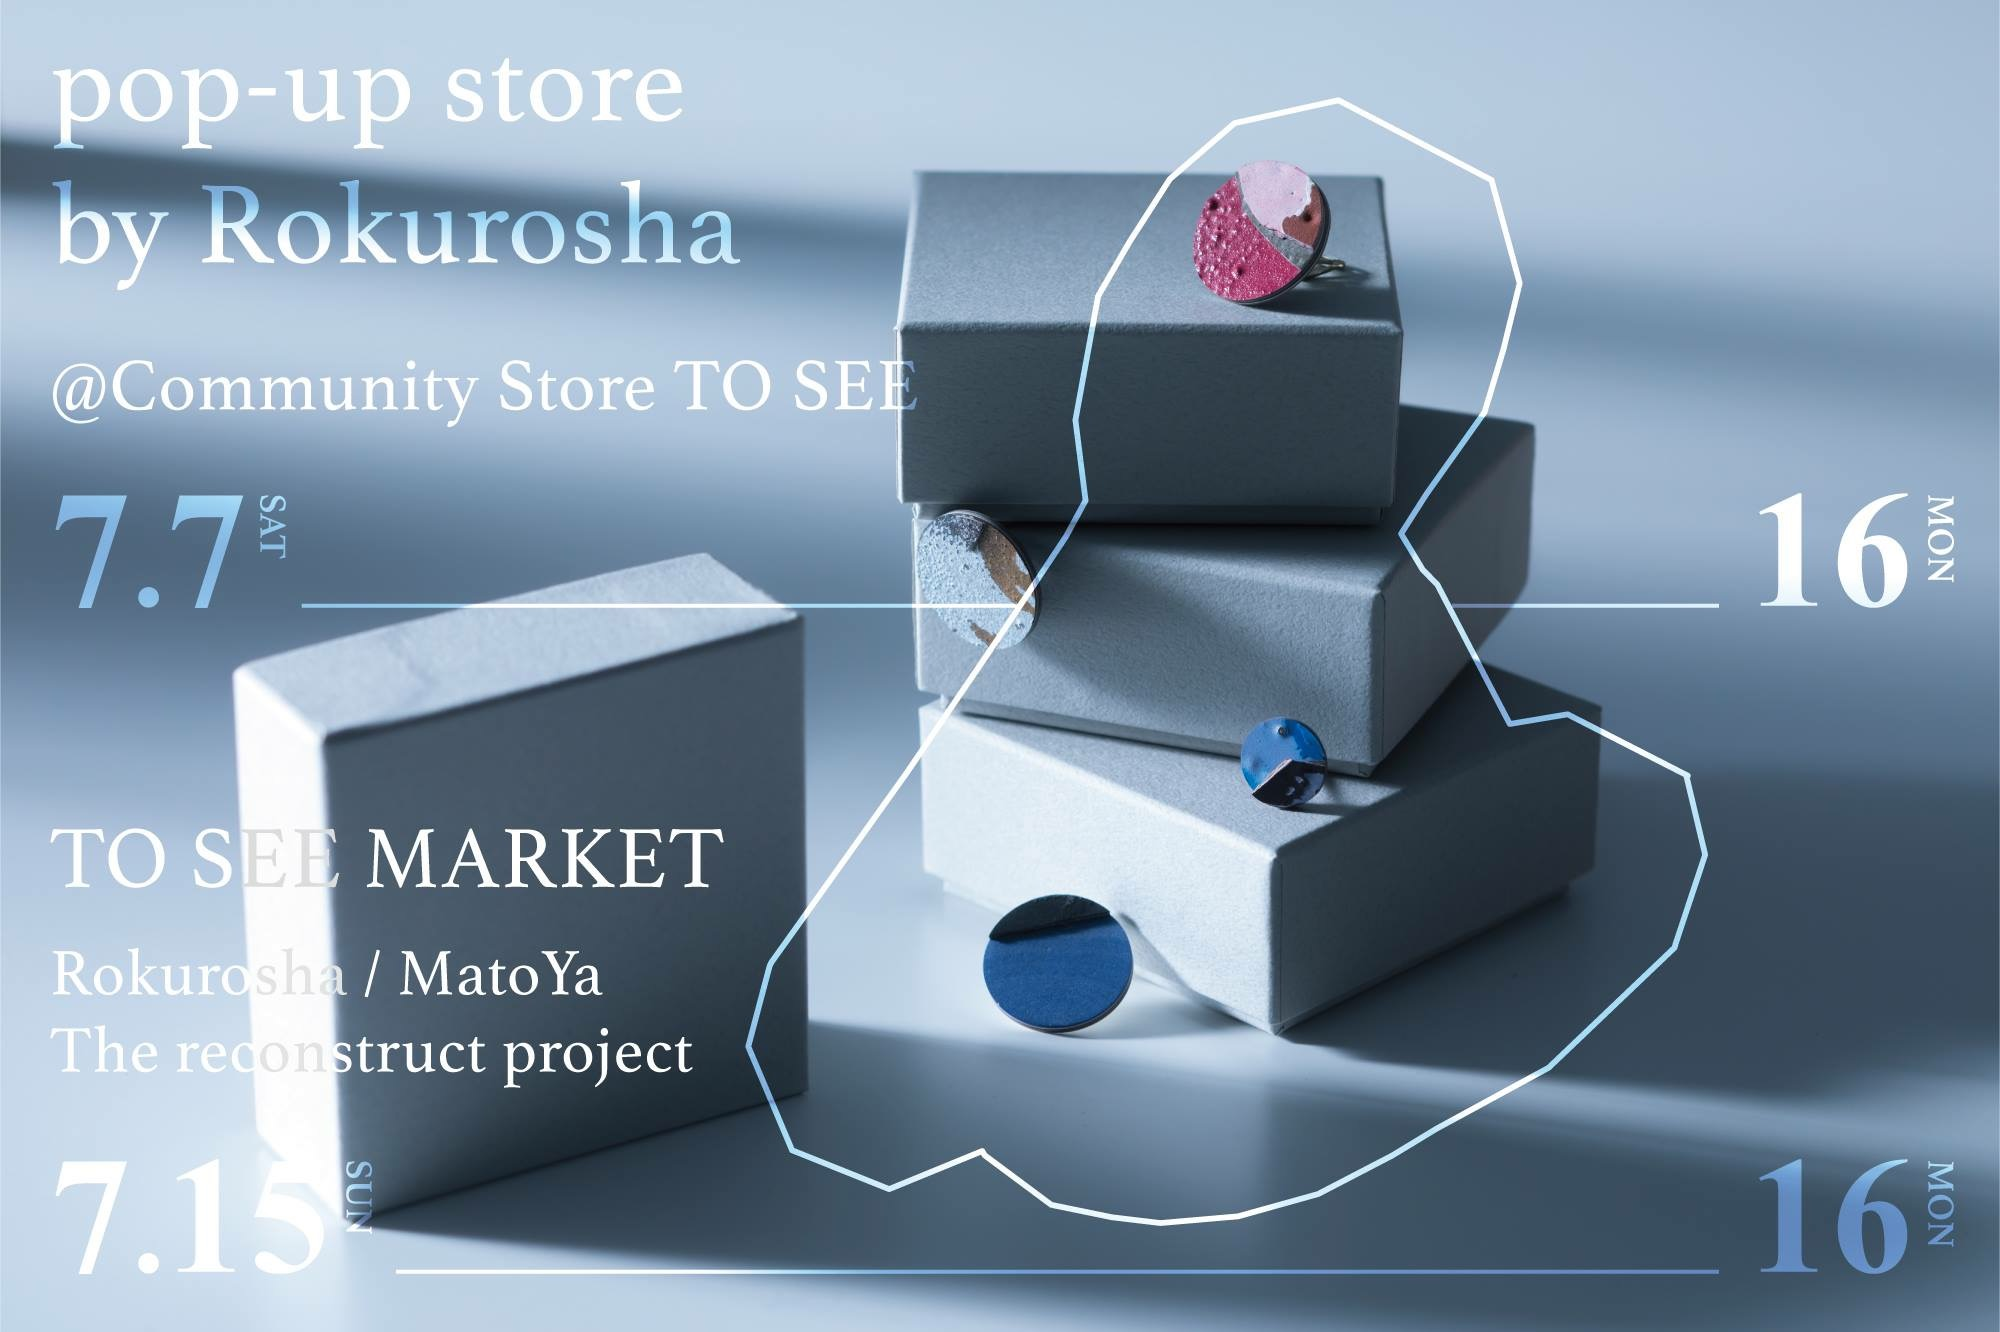 Rokurosha Pop-up Store